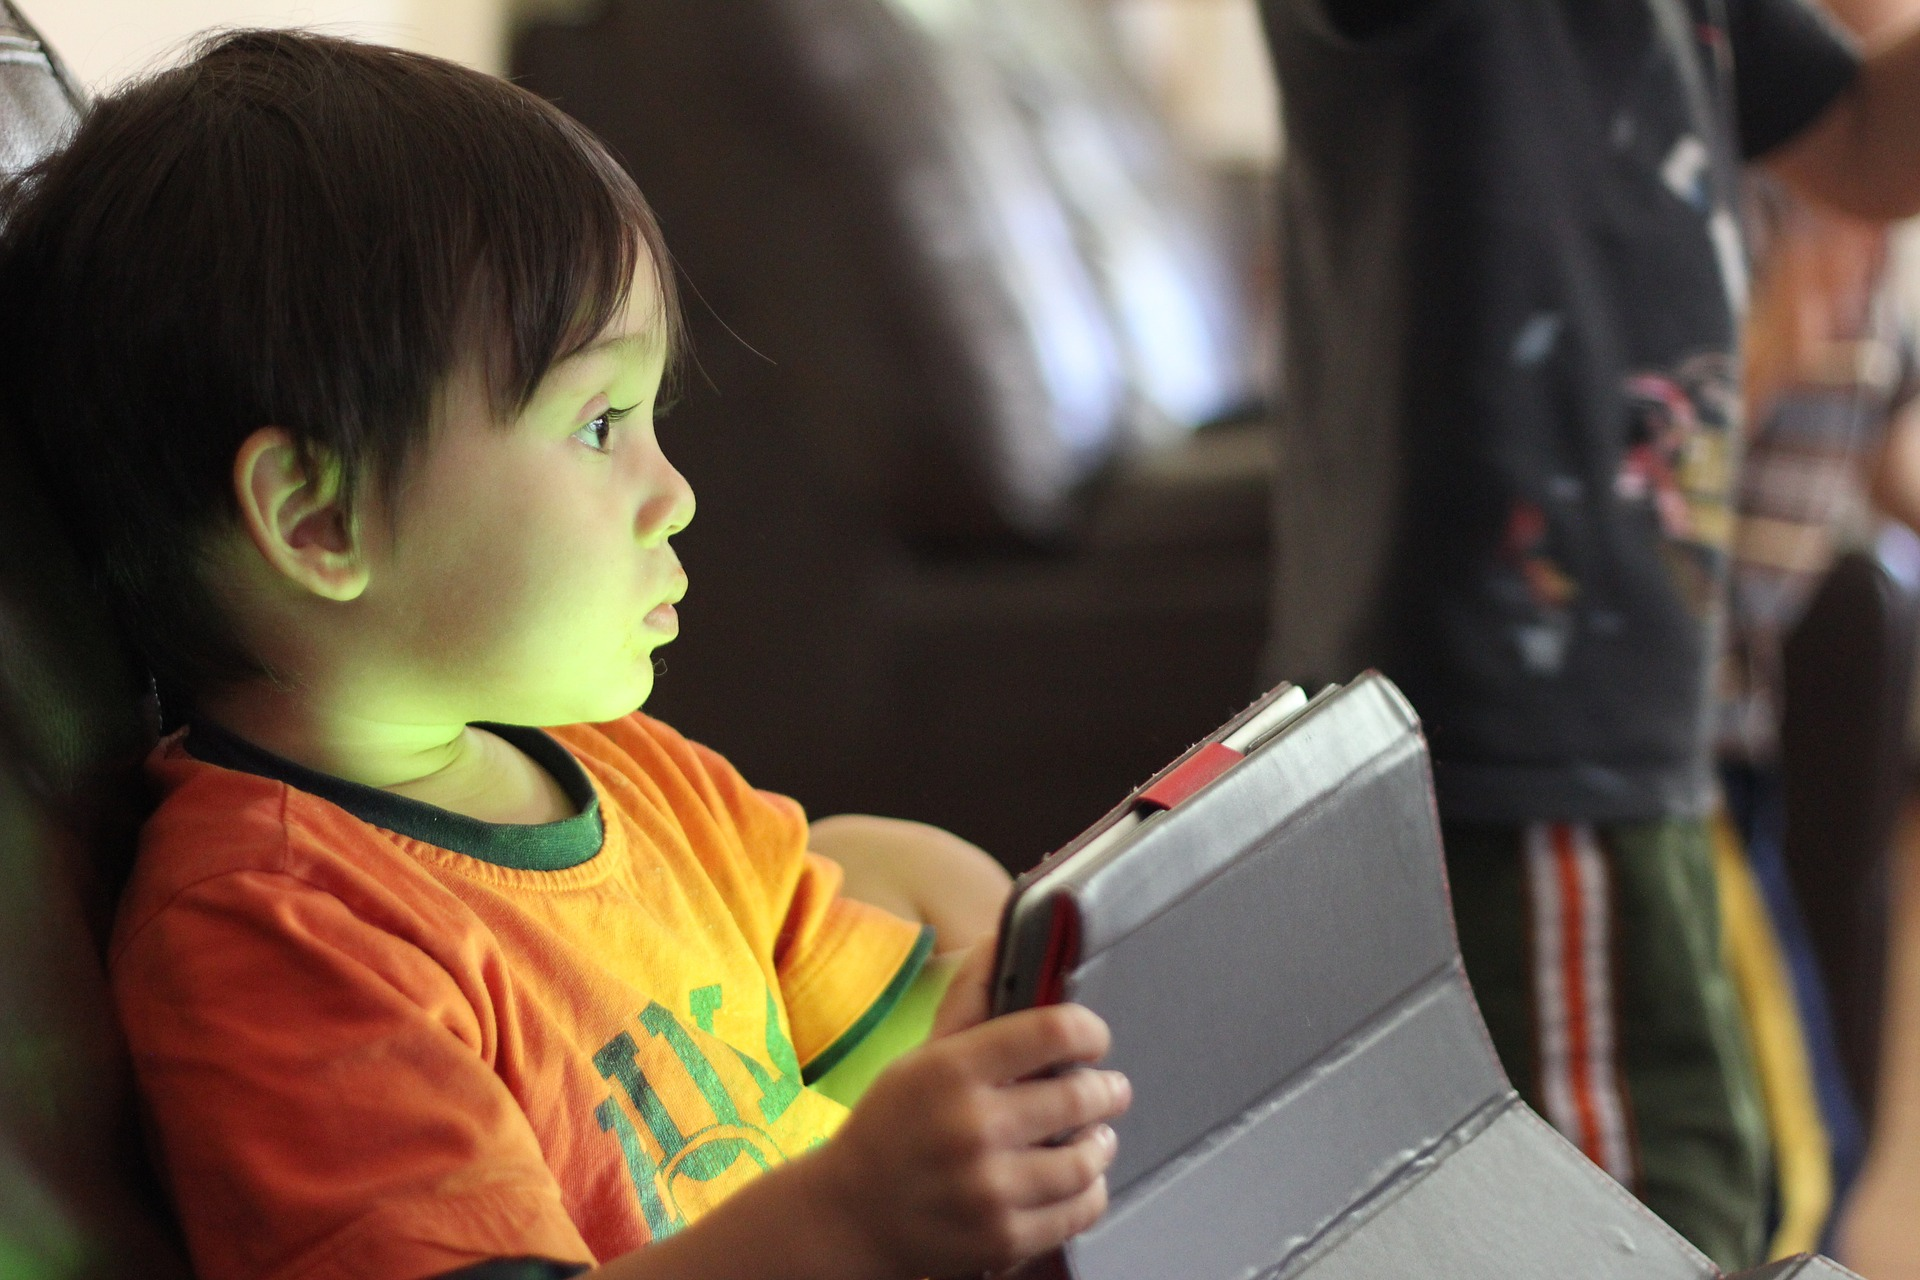 Digital Summer Time: How Do Kids Keep Busy?